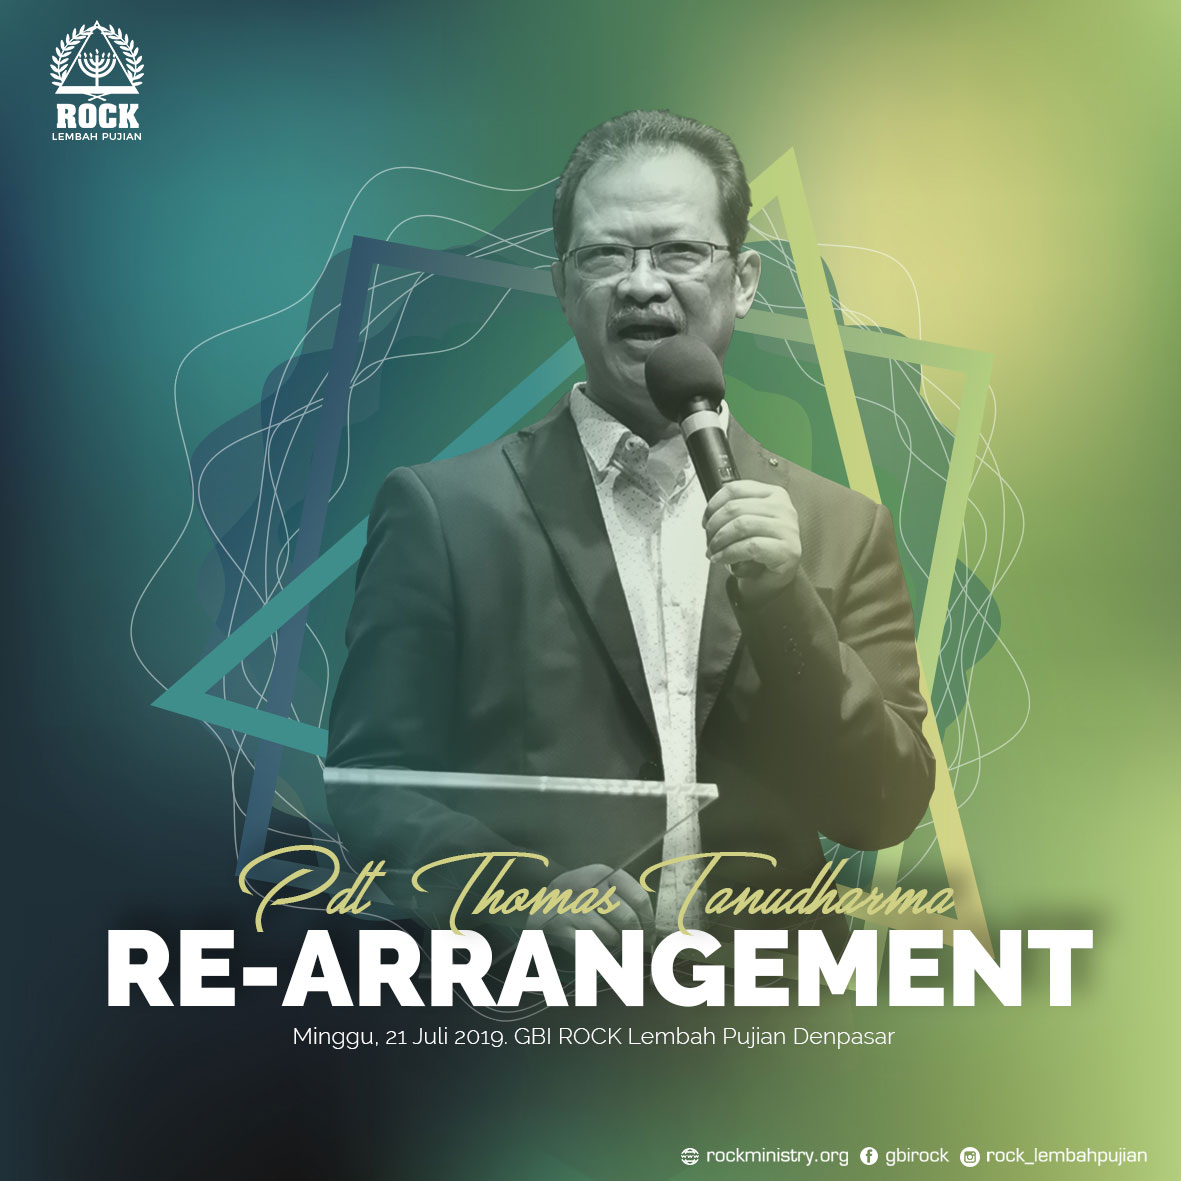 RE-ARRANGEMENT | Pdt. Thomas Tanudharma